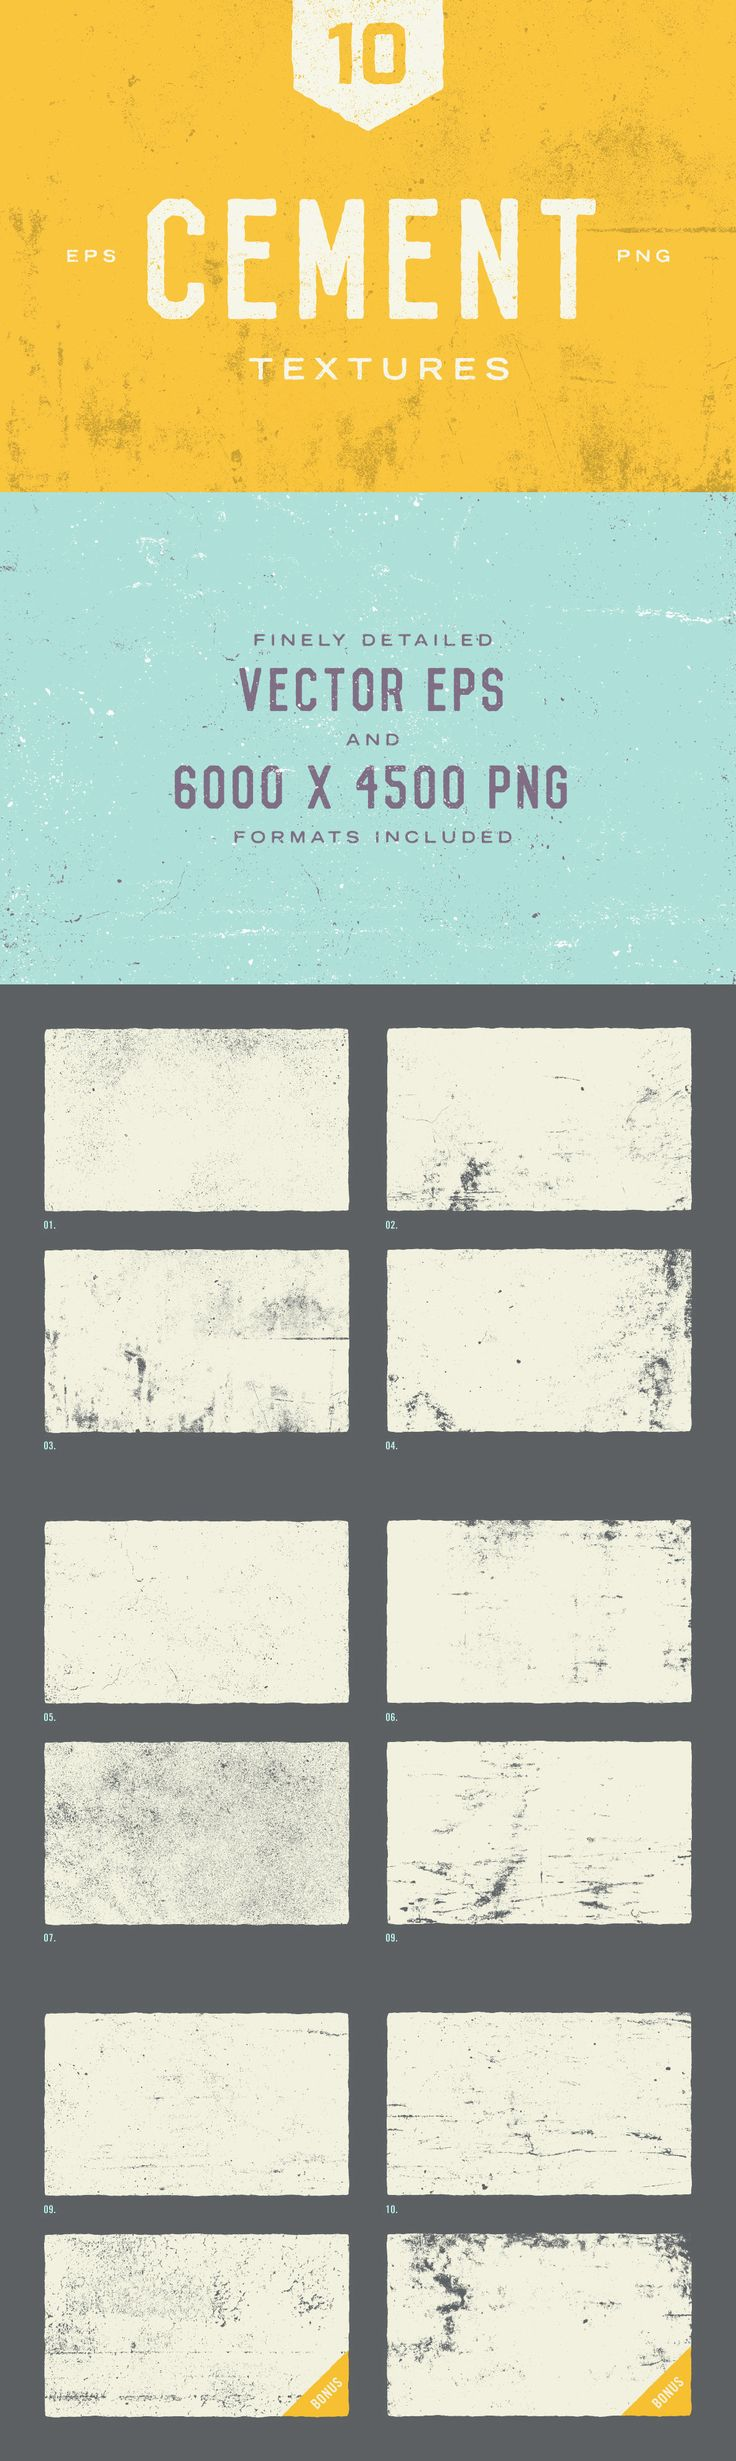 Gritty Cement Textures - You want that authentic, gritty textured look, but don't have the hours set aside ...